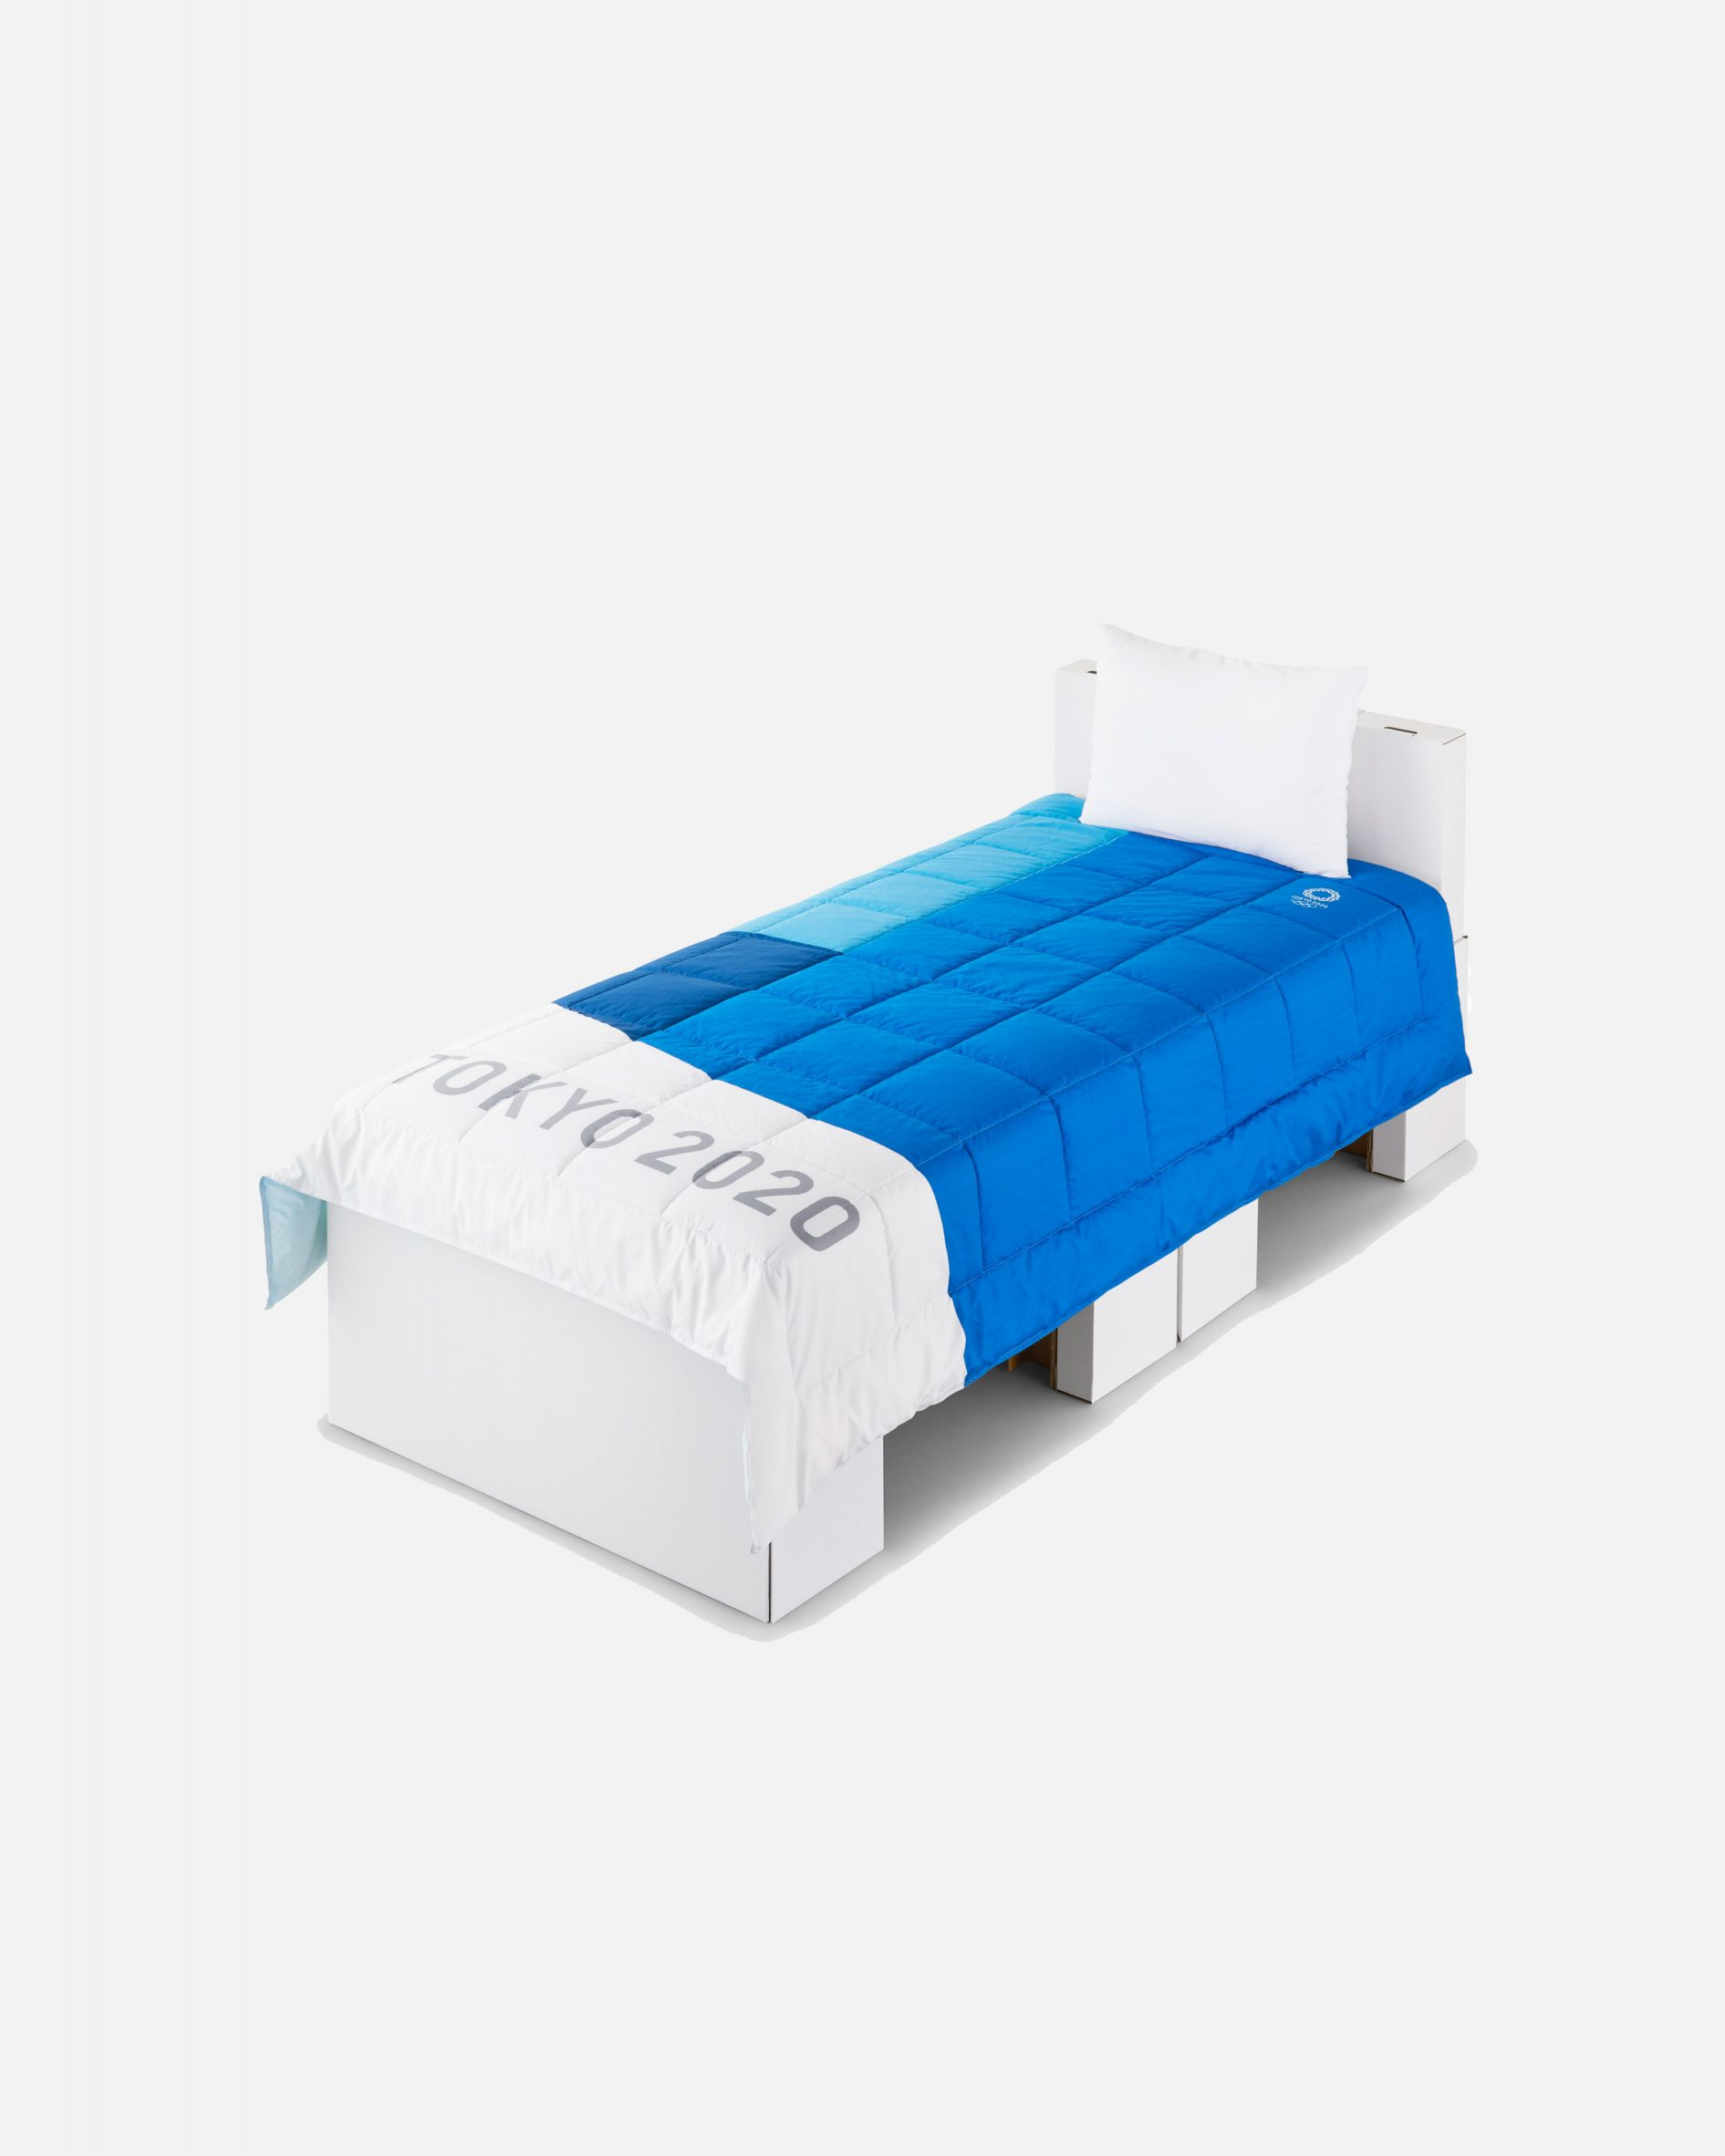 An Airweave bed and mattress